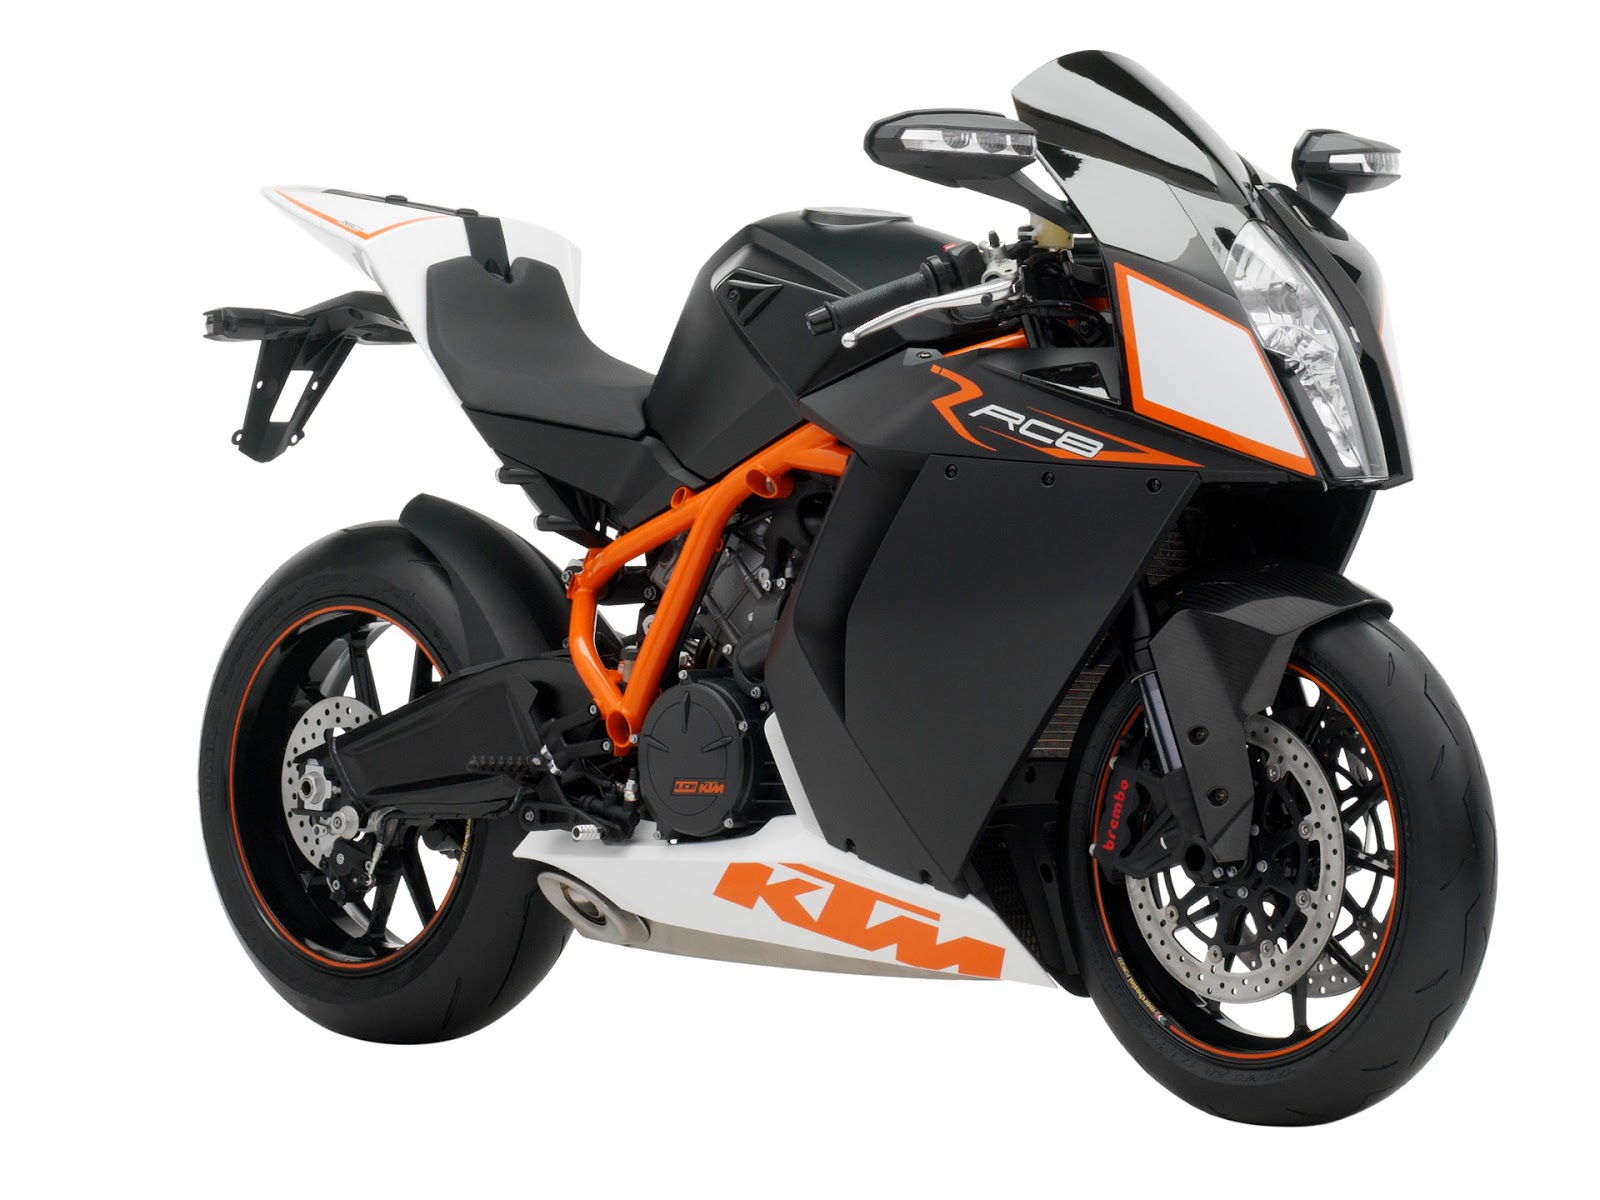 MOTORCYCLES   MOTORCYCLE NEWS AND REVIEWS  KTM RC25 IS EXPECTED TO